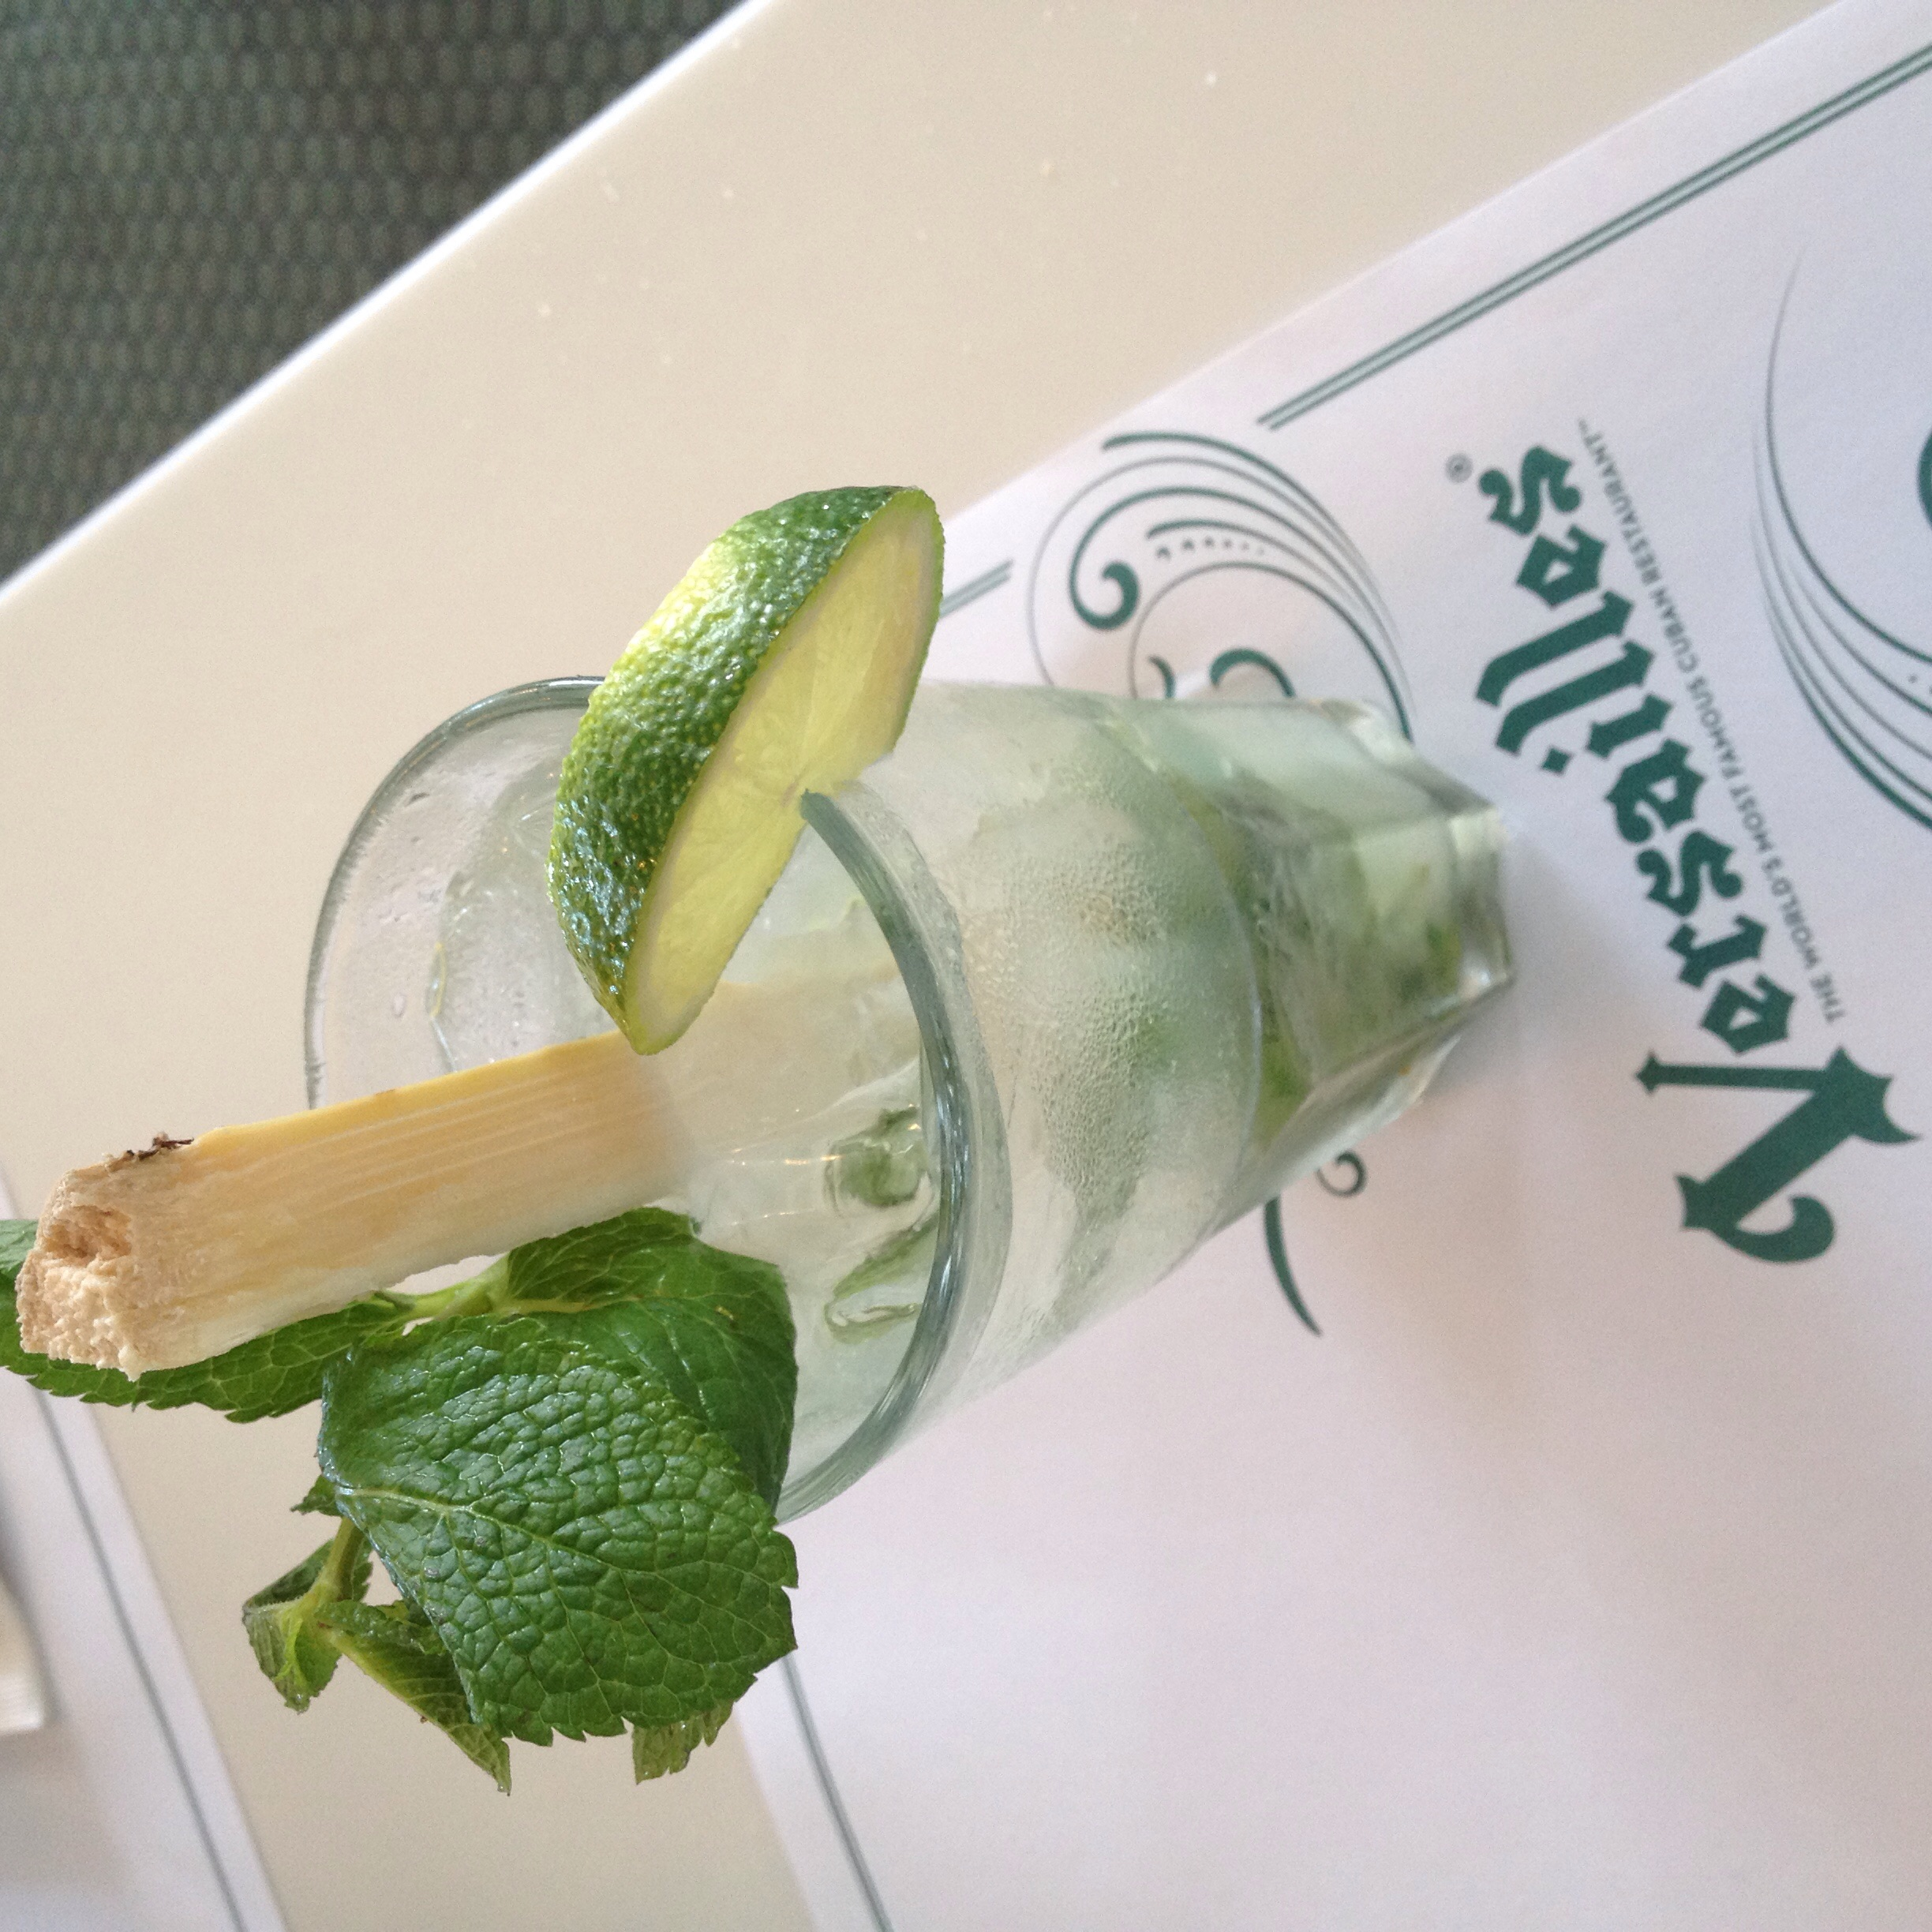 Mojito. What else?